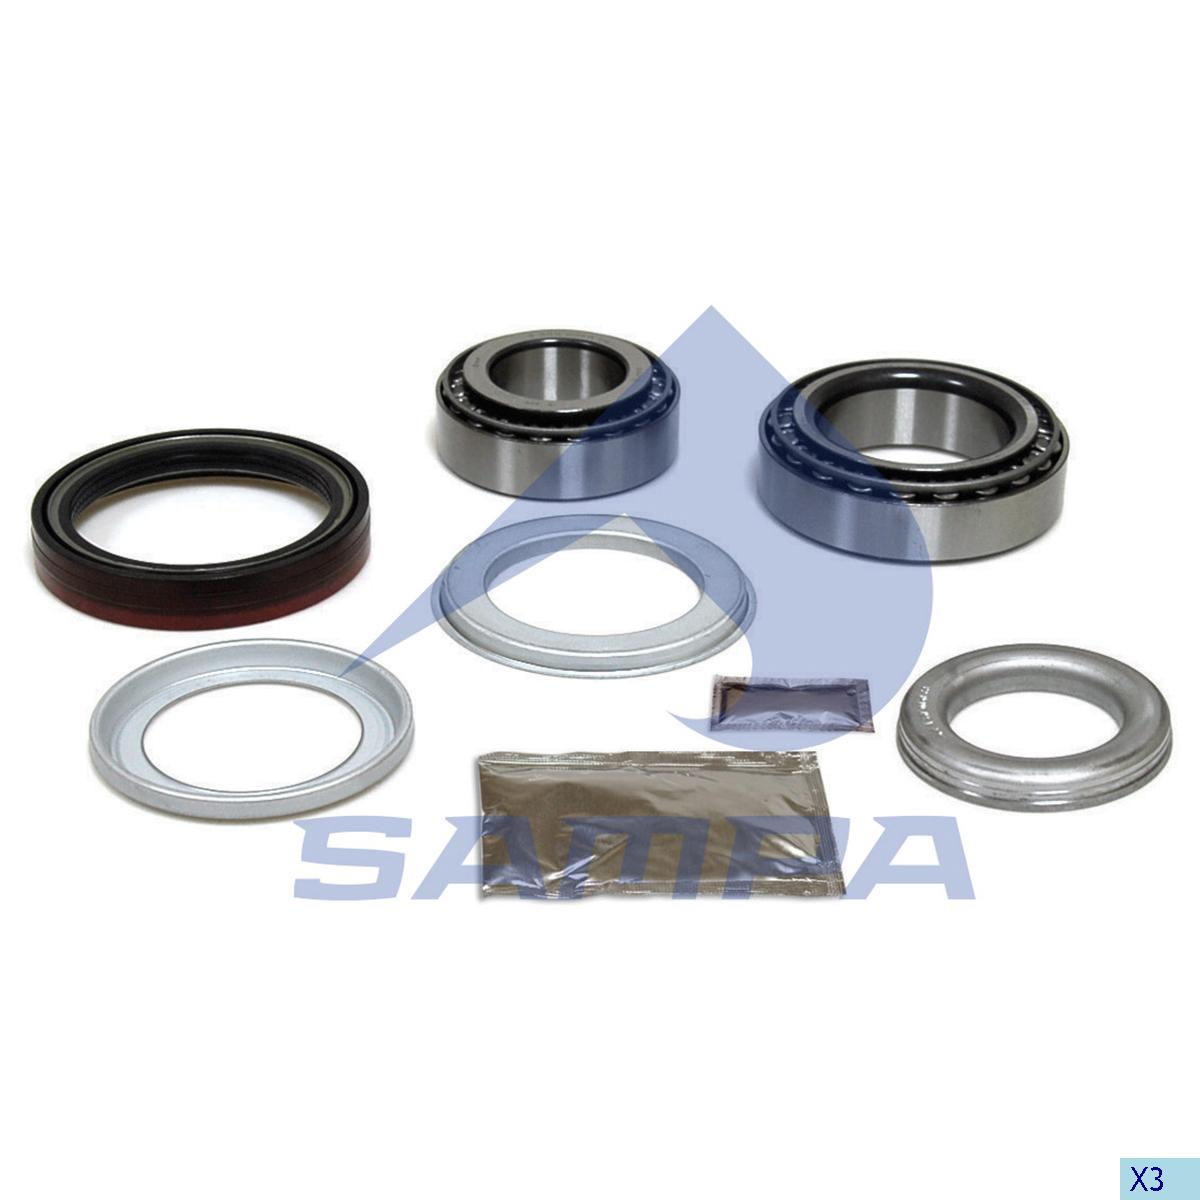 Repair Kit, Wheel Hub, Sauer, Power Unit